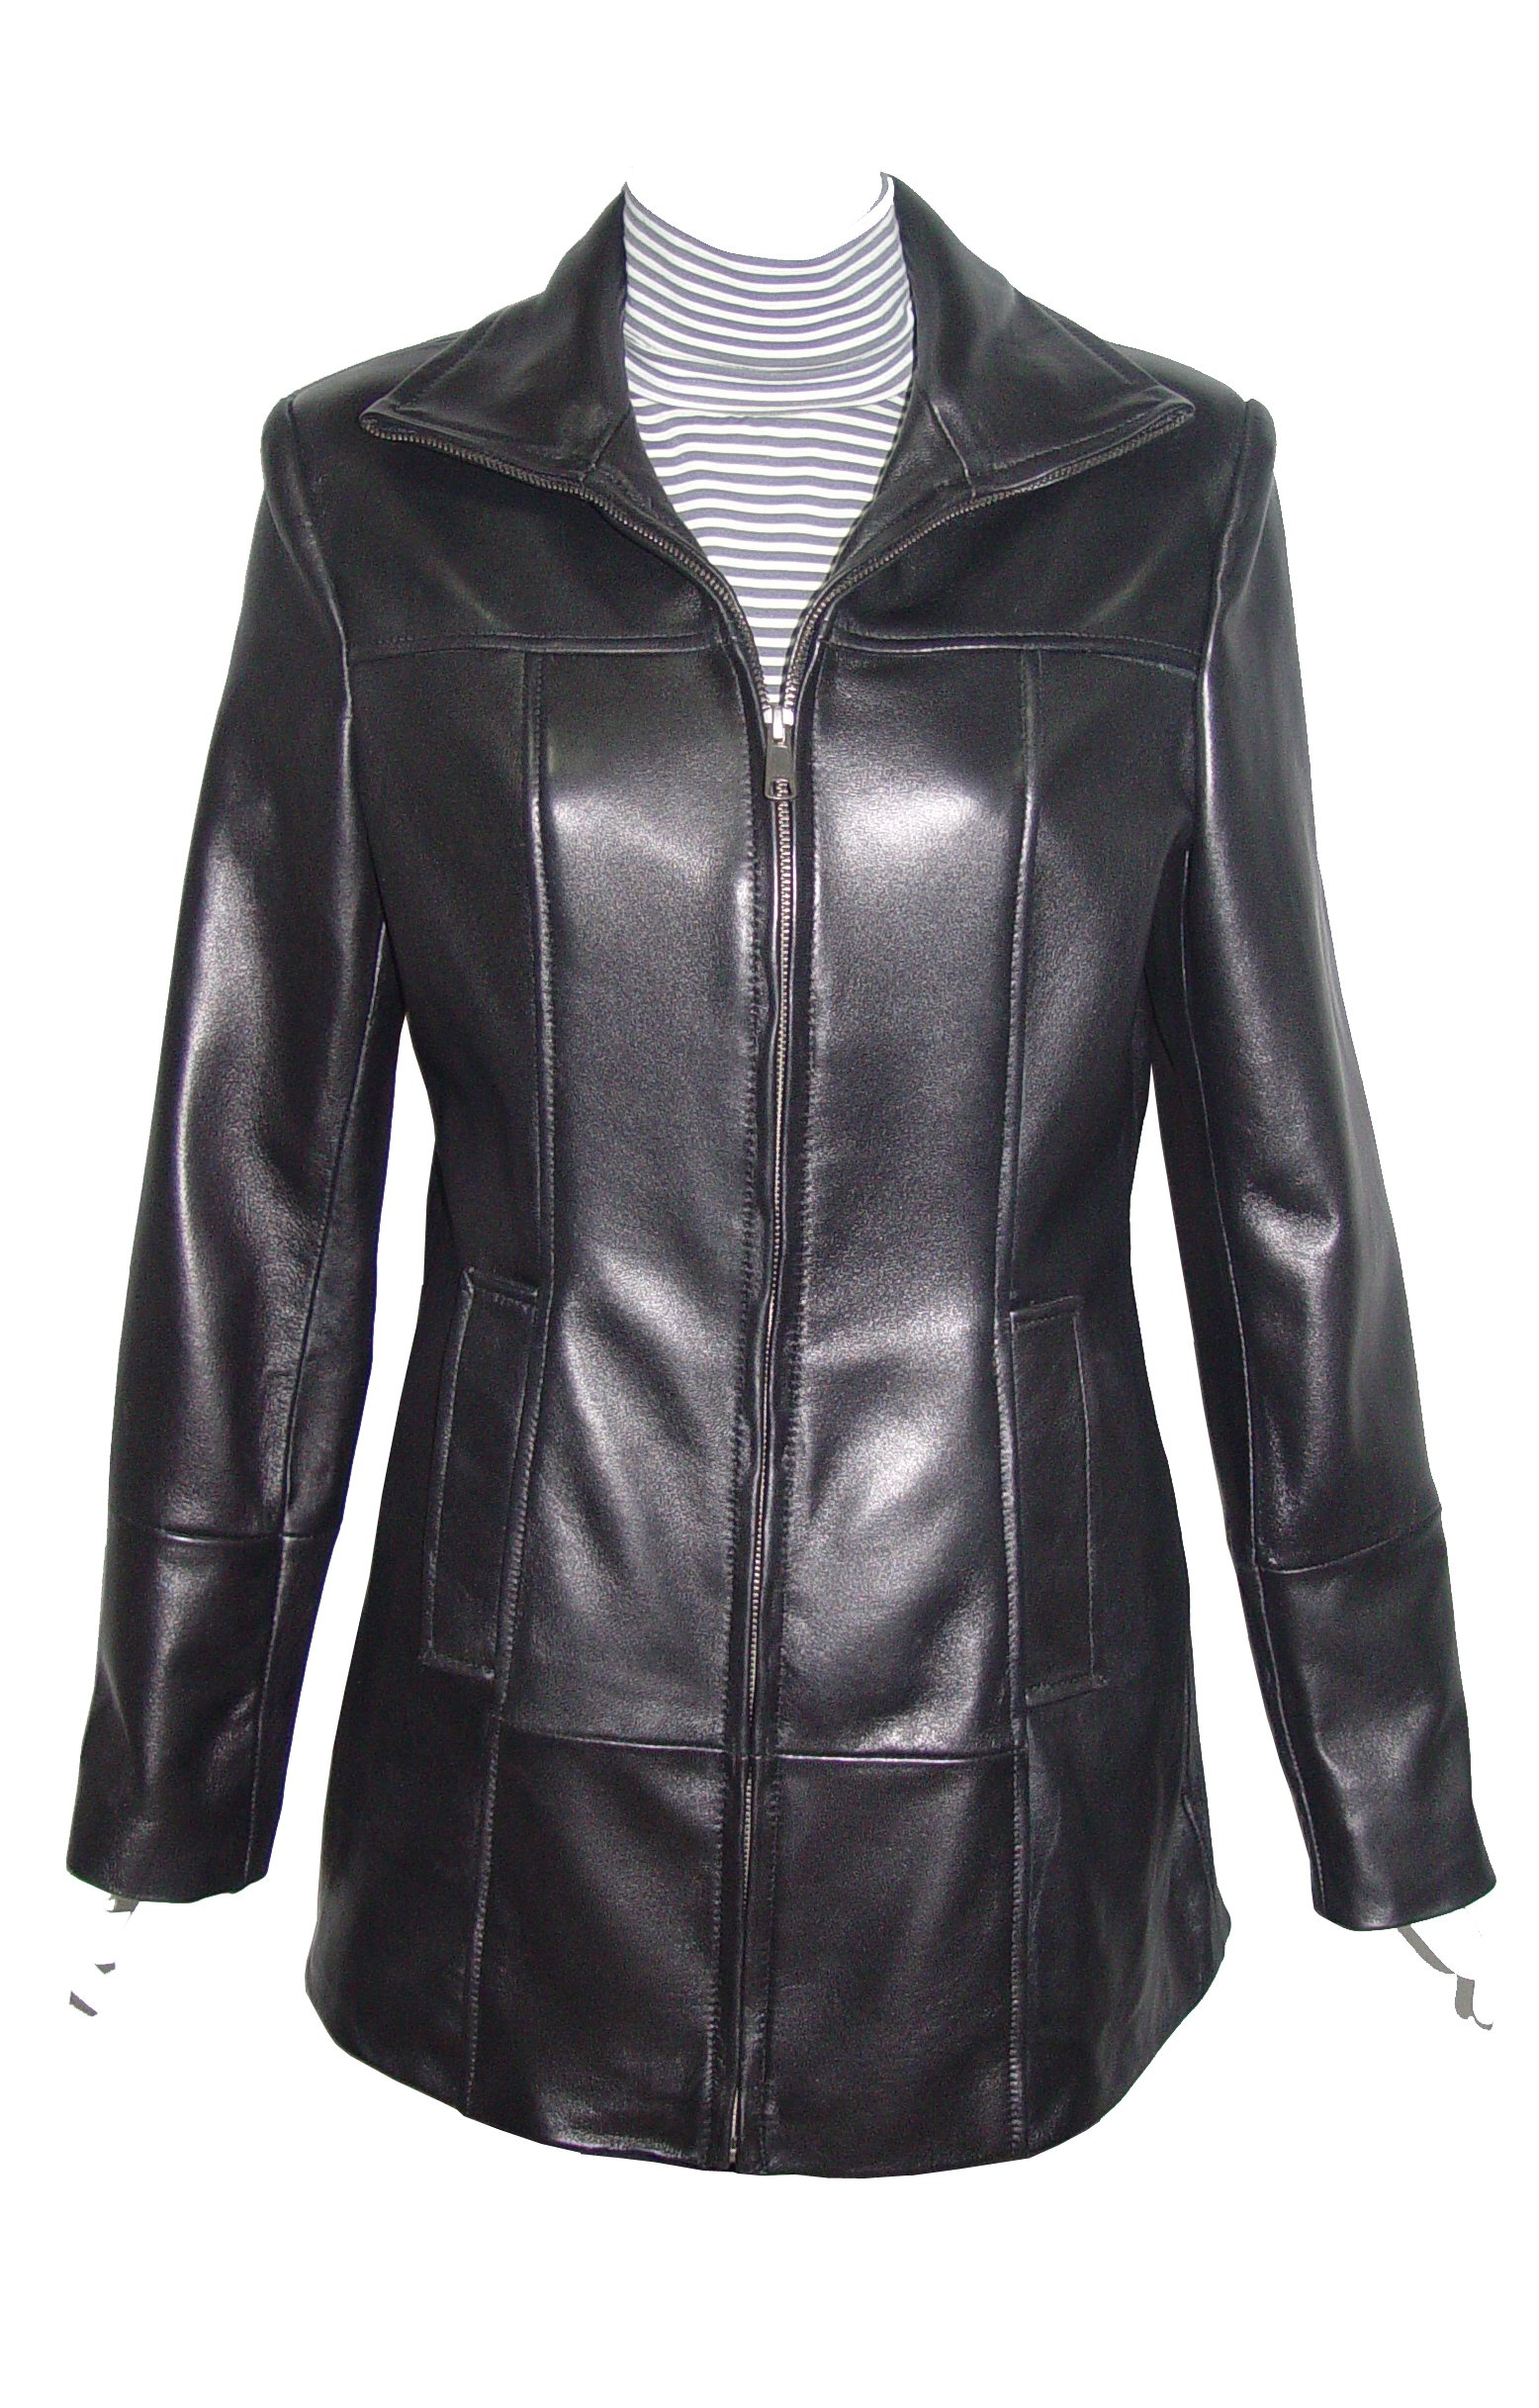 Nettailor 4180 Fitted Best Clean Cool Leather Long Jackets Womens Clothing